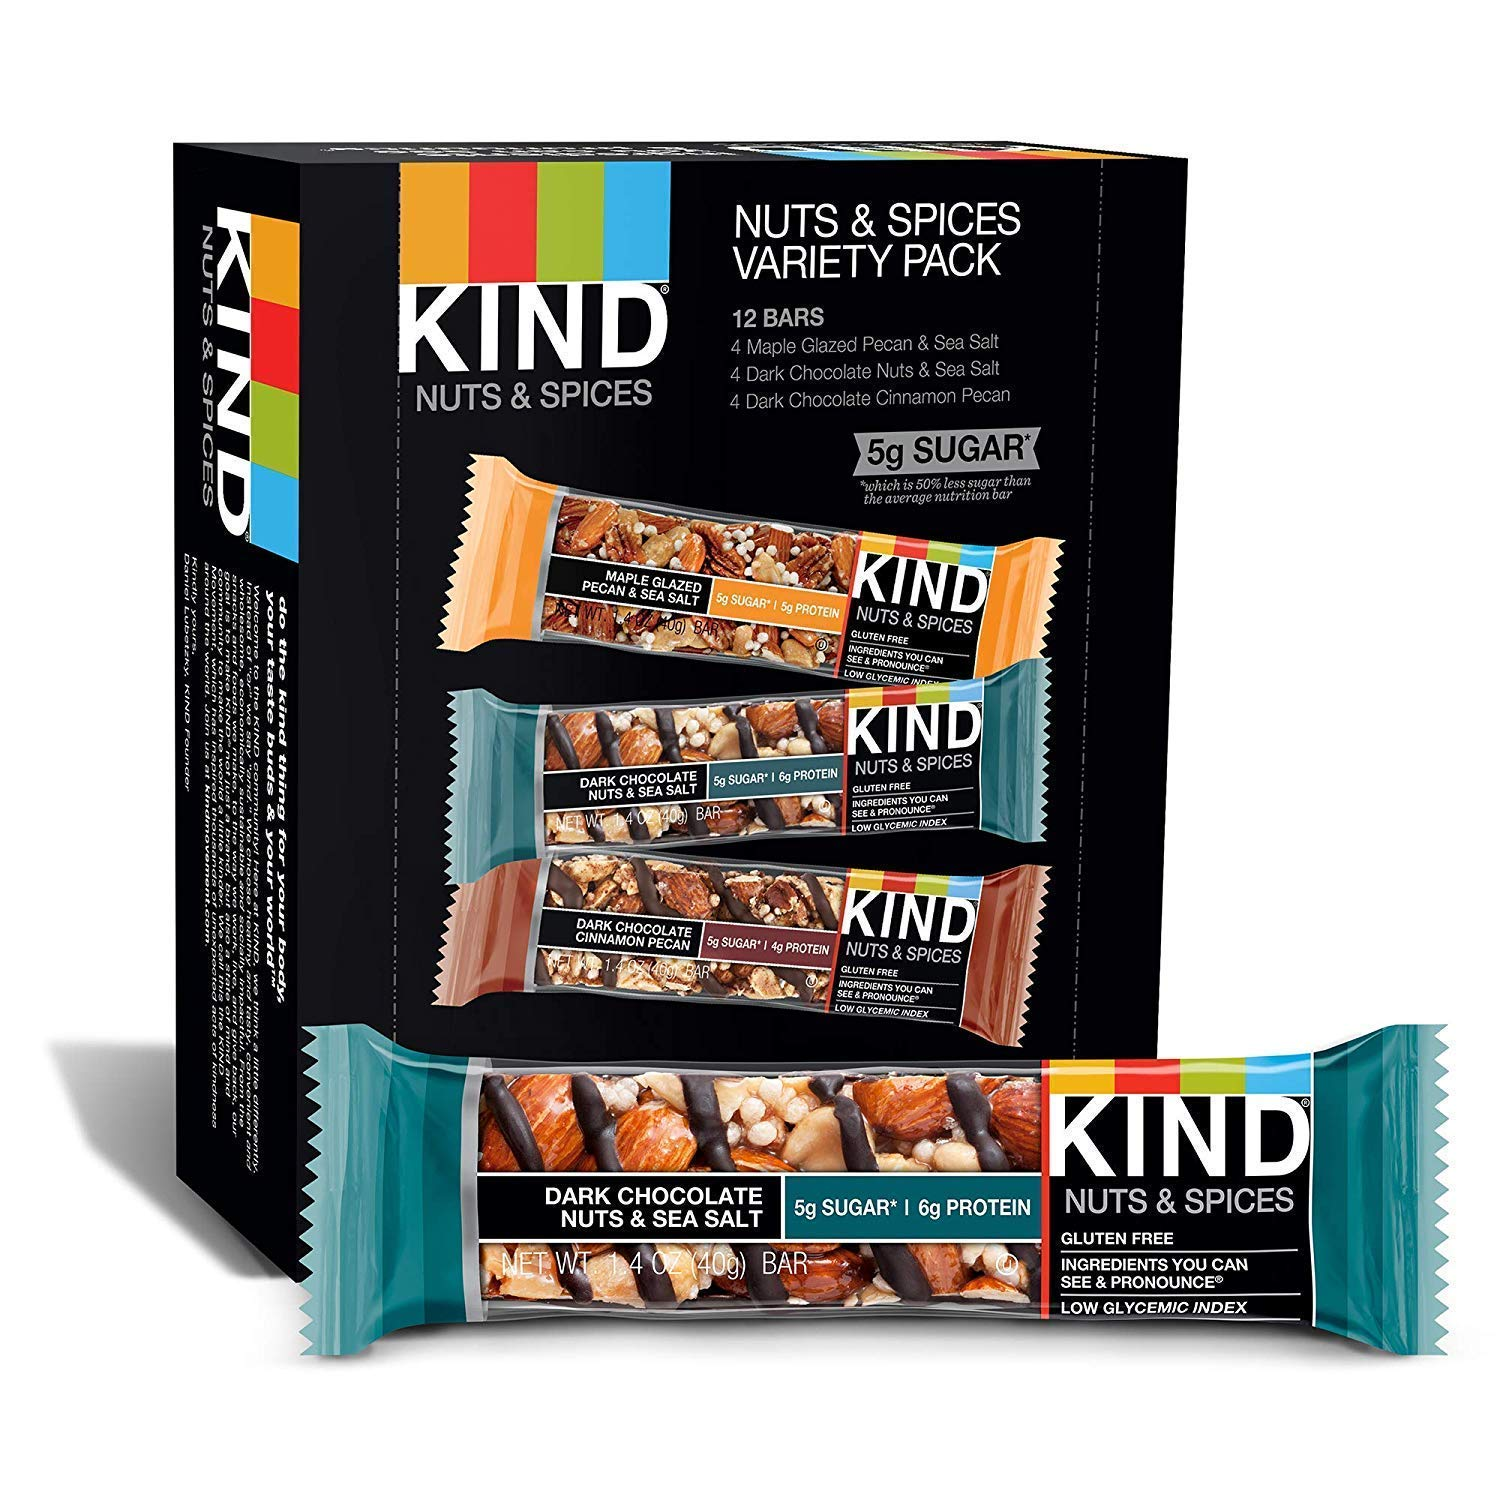 KIND Bars, Nuts and Spices Variety Pack, Gluten Free, 1.4 Ounce Bars,Packaging May Vary by KIND (Image #1)